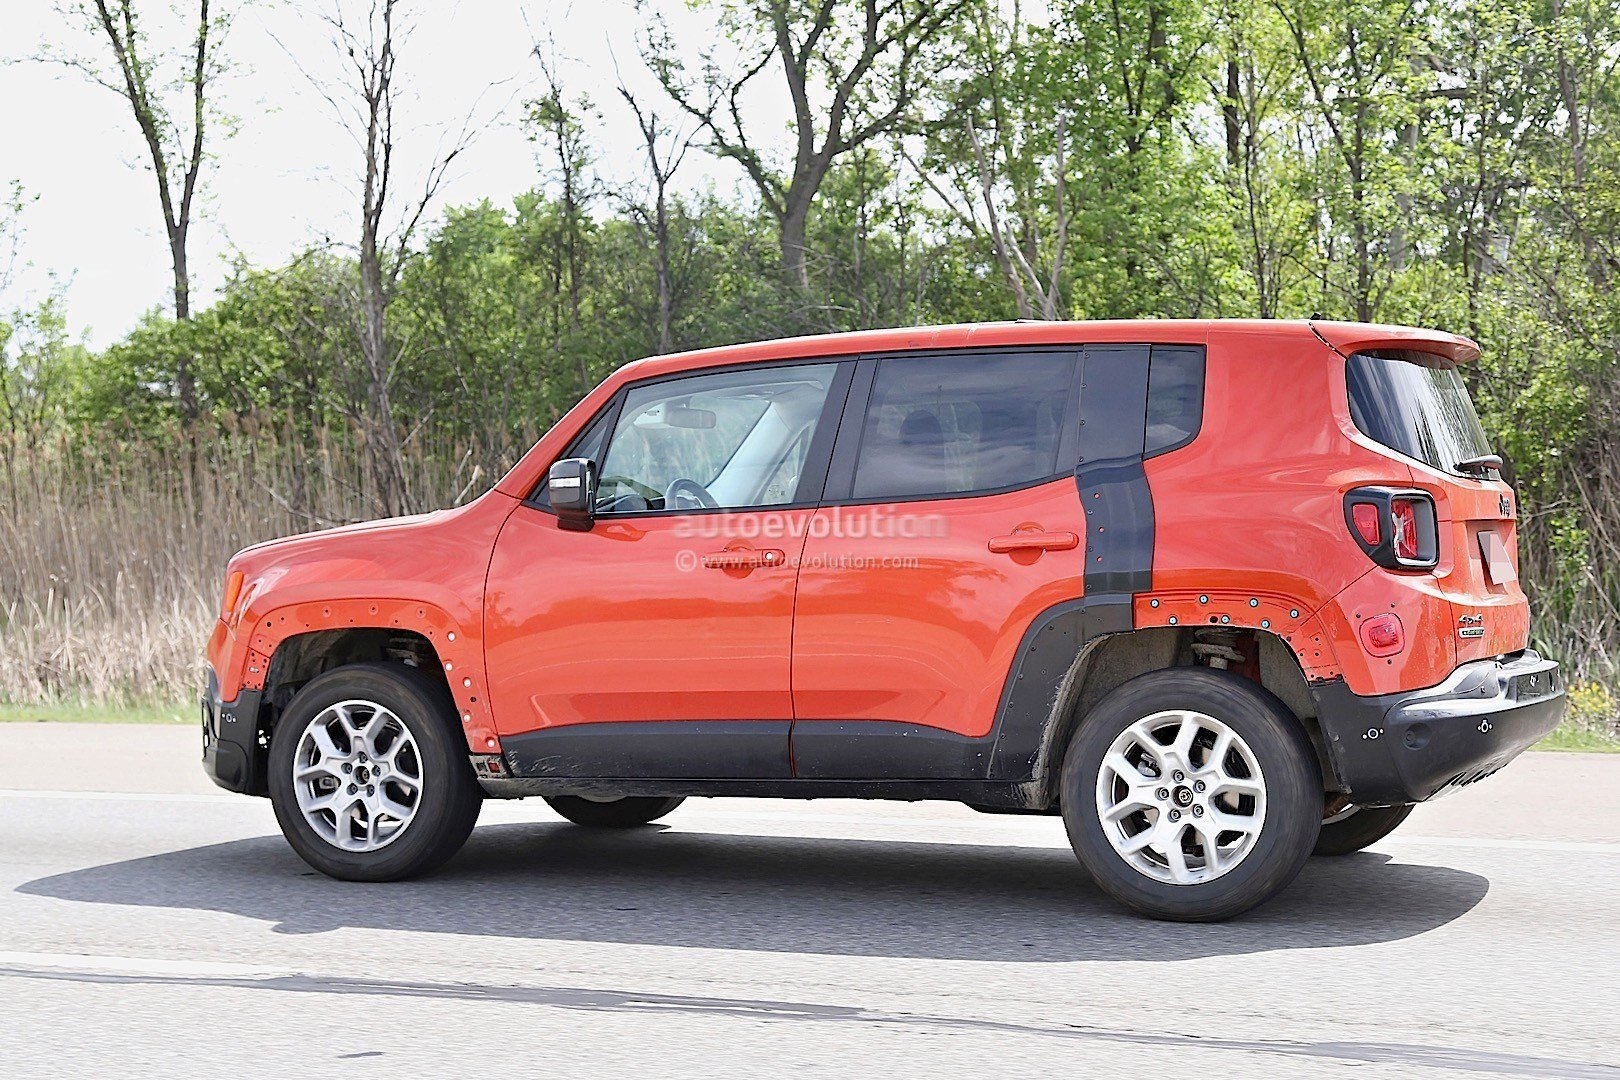 Latest 2017 Jeep C Suv Prototype Spied Wearing Renegade Body Free Download